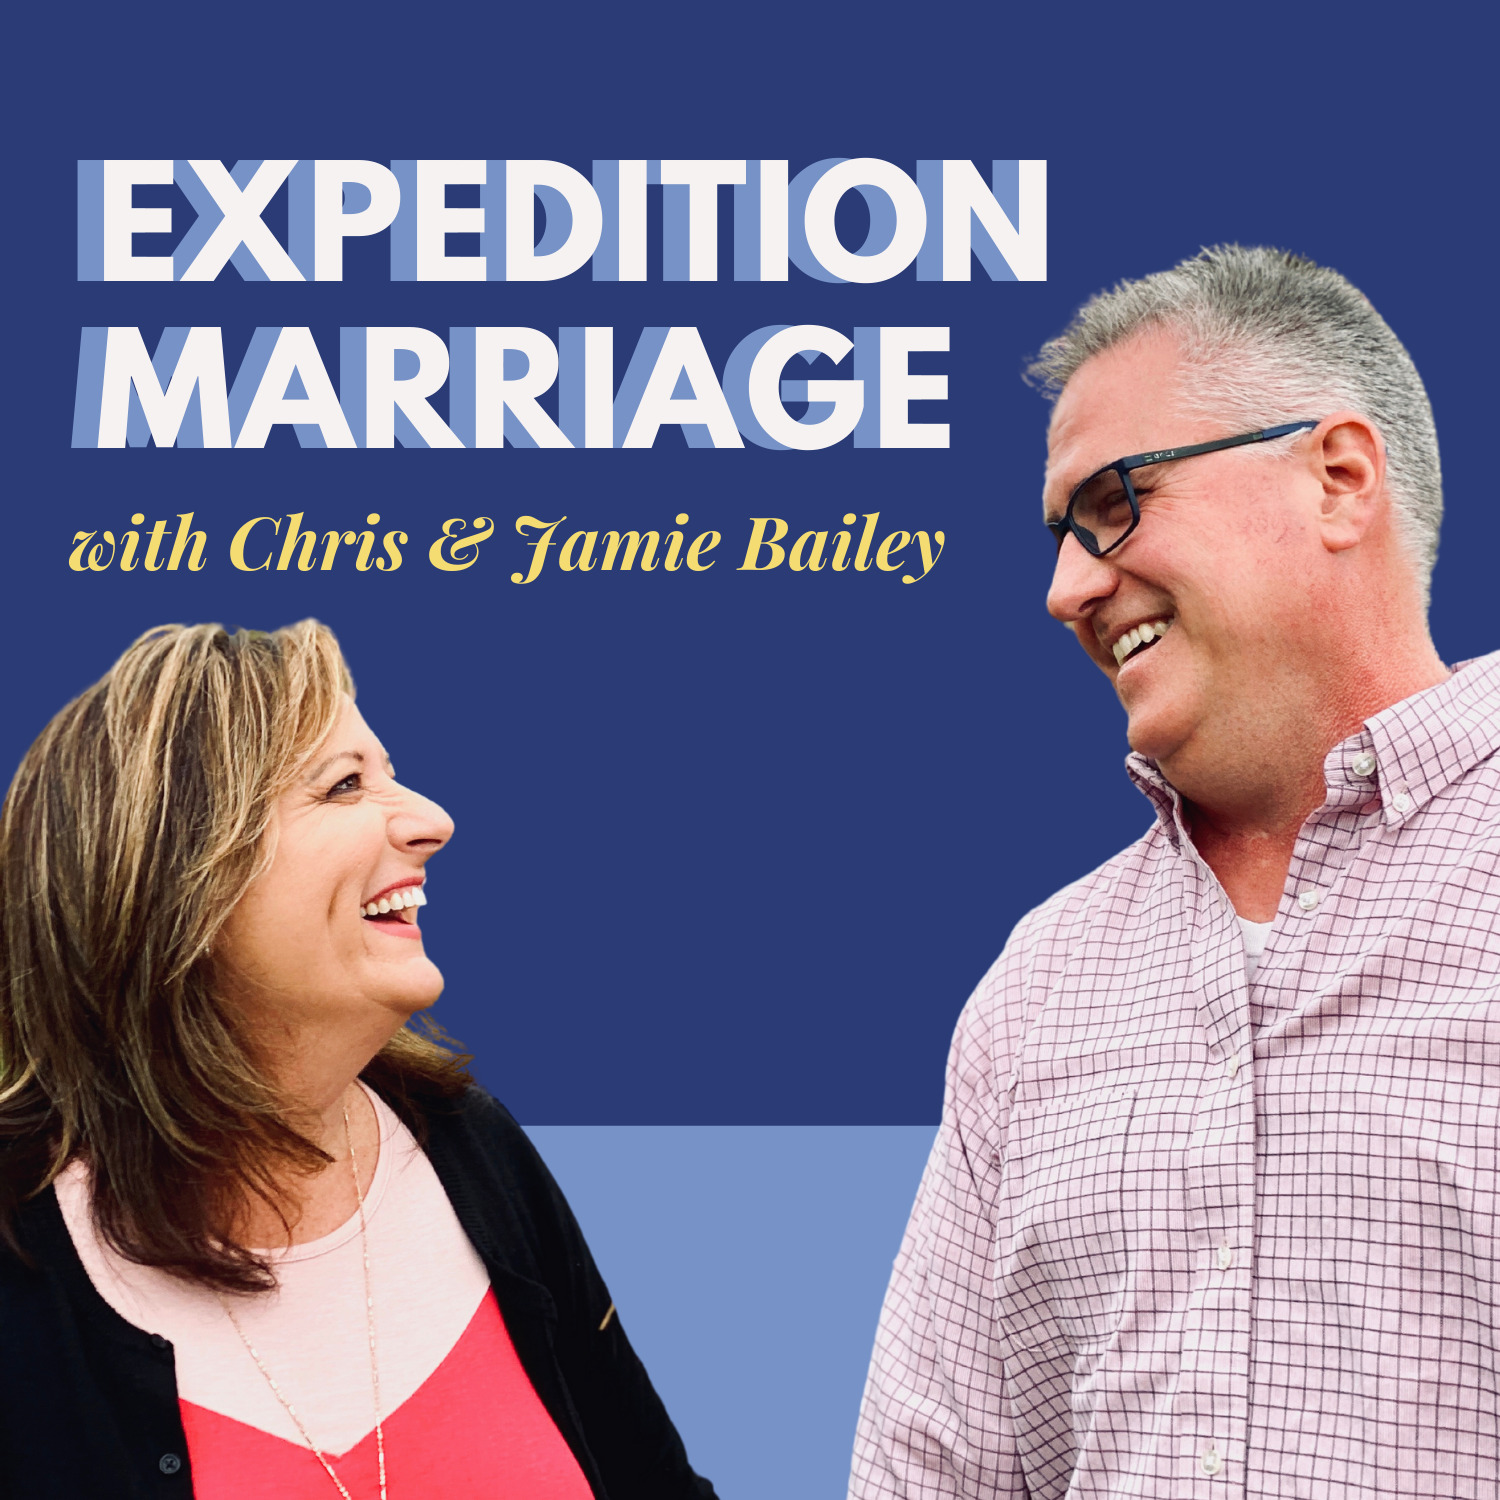 Expedition Marriage with Chris & Jamie Bailey